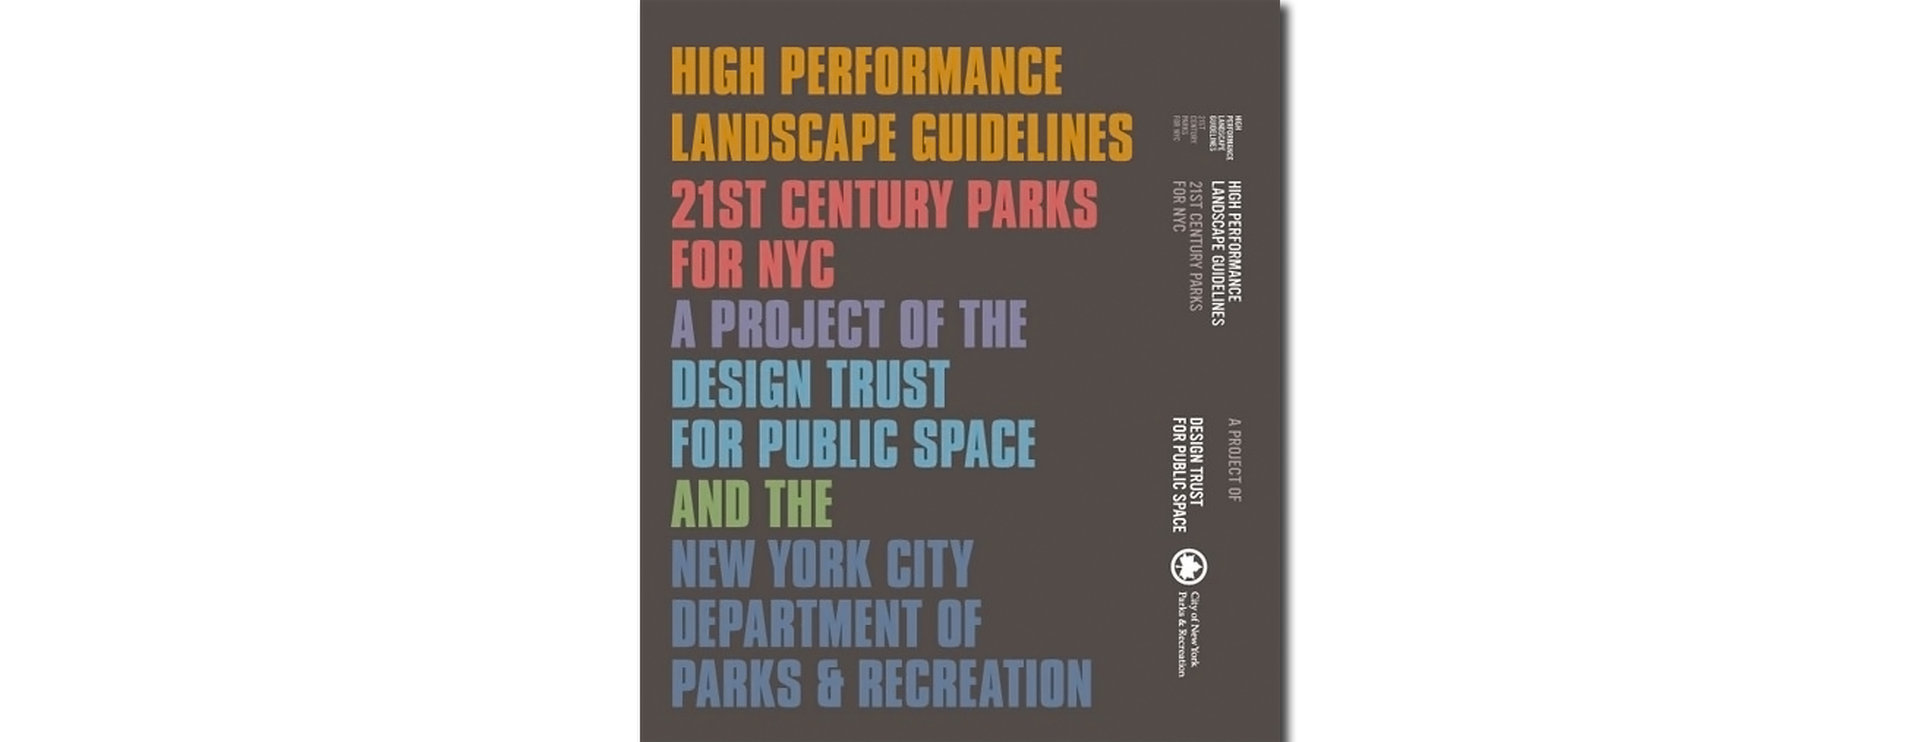 21st Century Parks for NYC